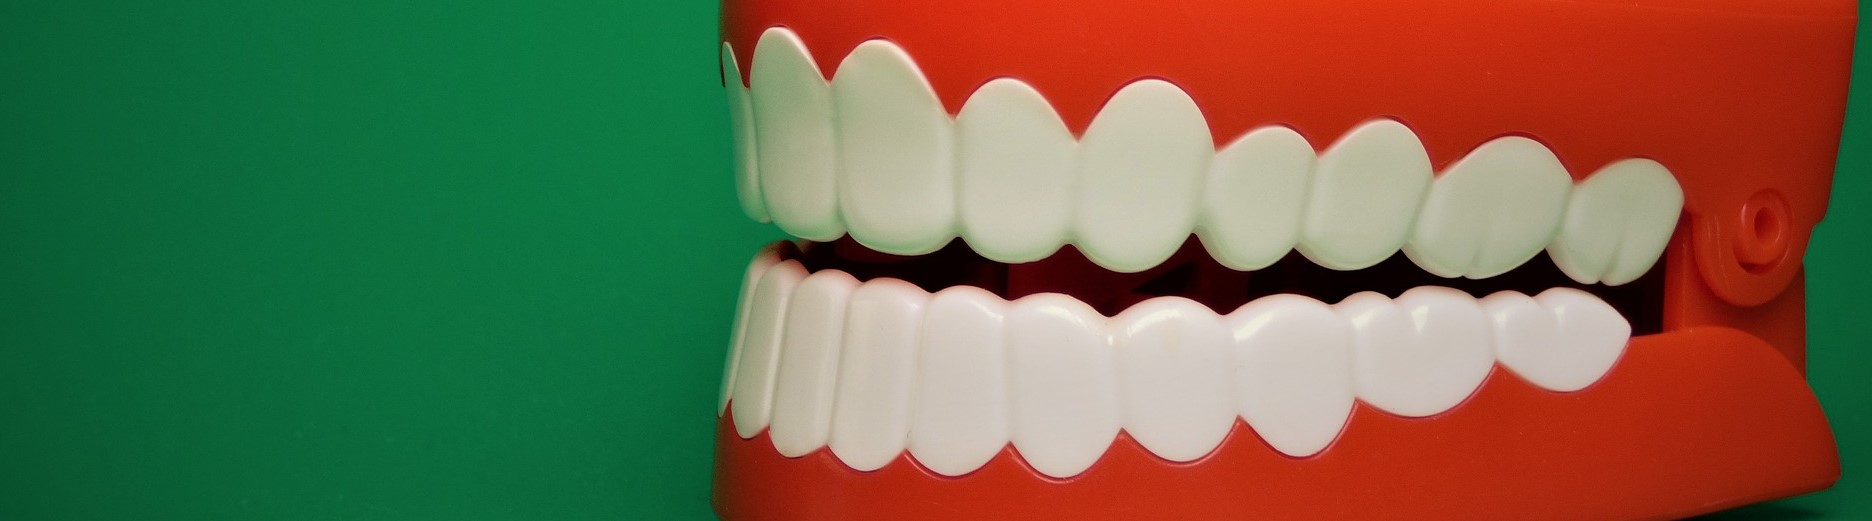 Oral Health Care in Care Homes